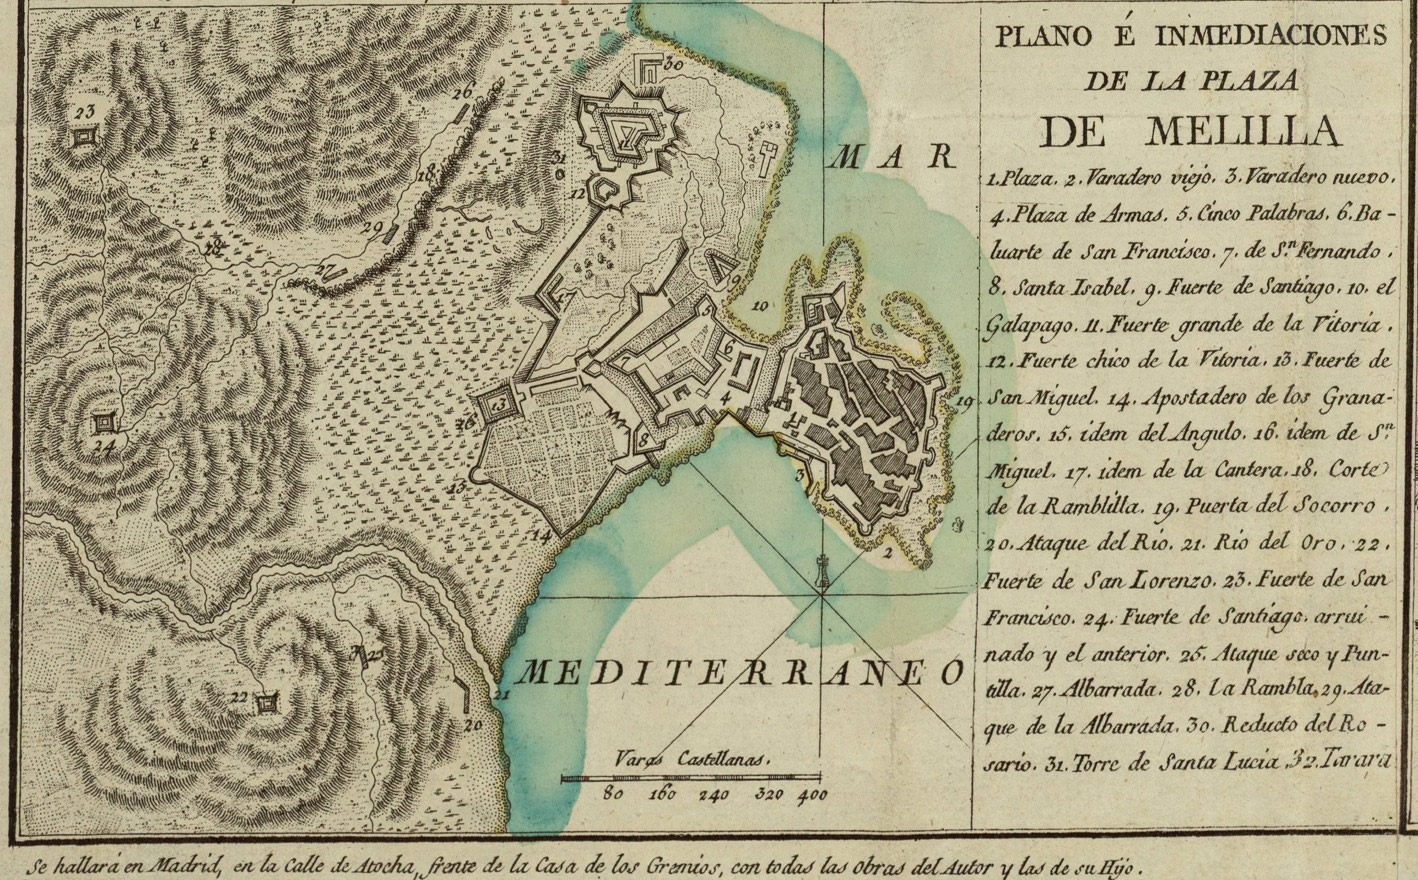 Map and vecinity of the Plaza of Melilla 1793